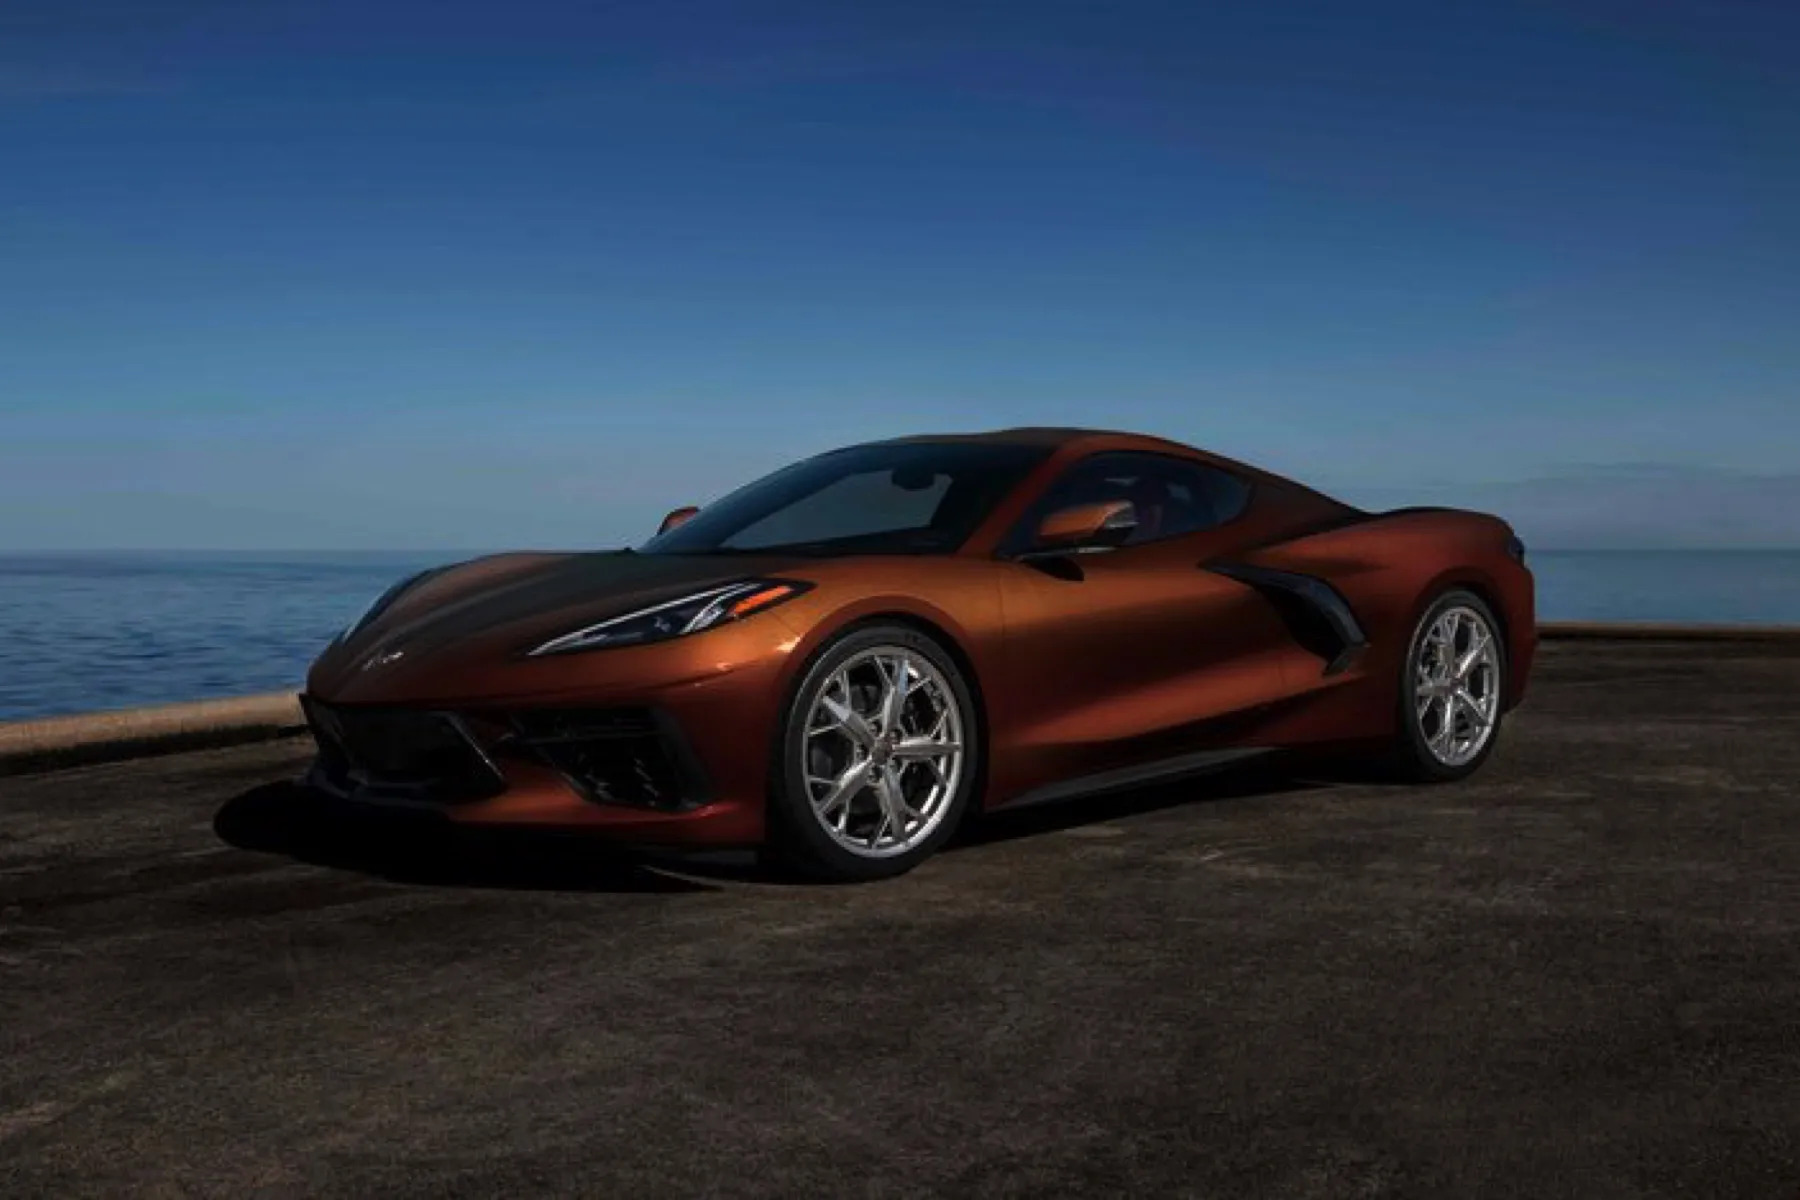 A view of one of the three colours available for the 2022 Chevrolet Corvette Stingray: a color called Caffeine